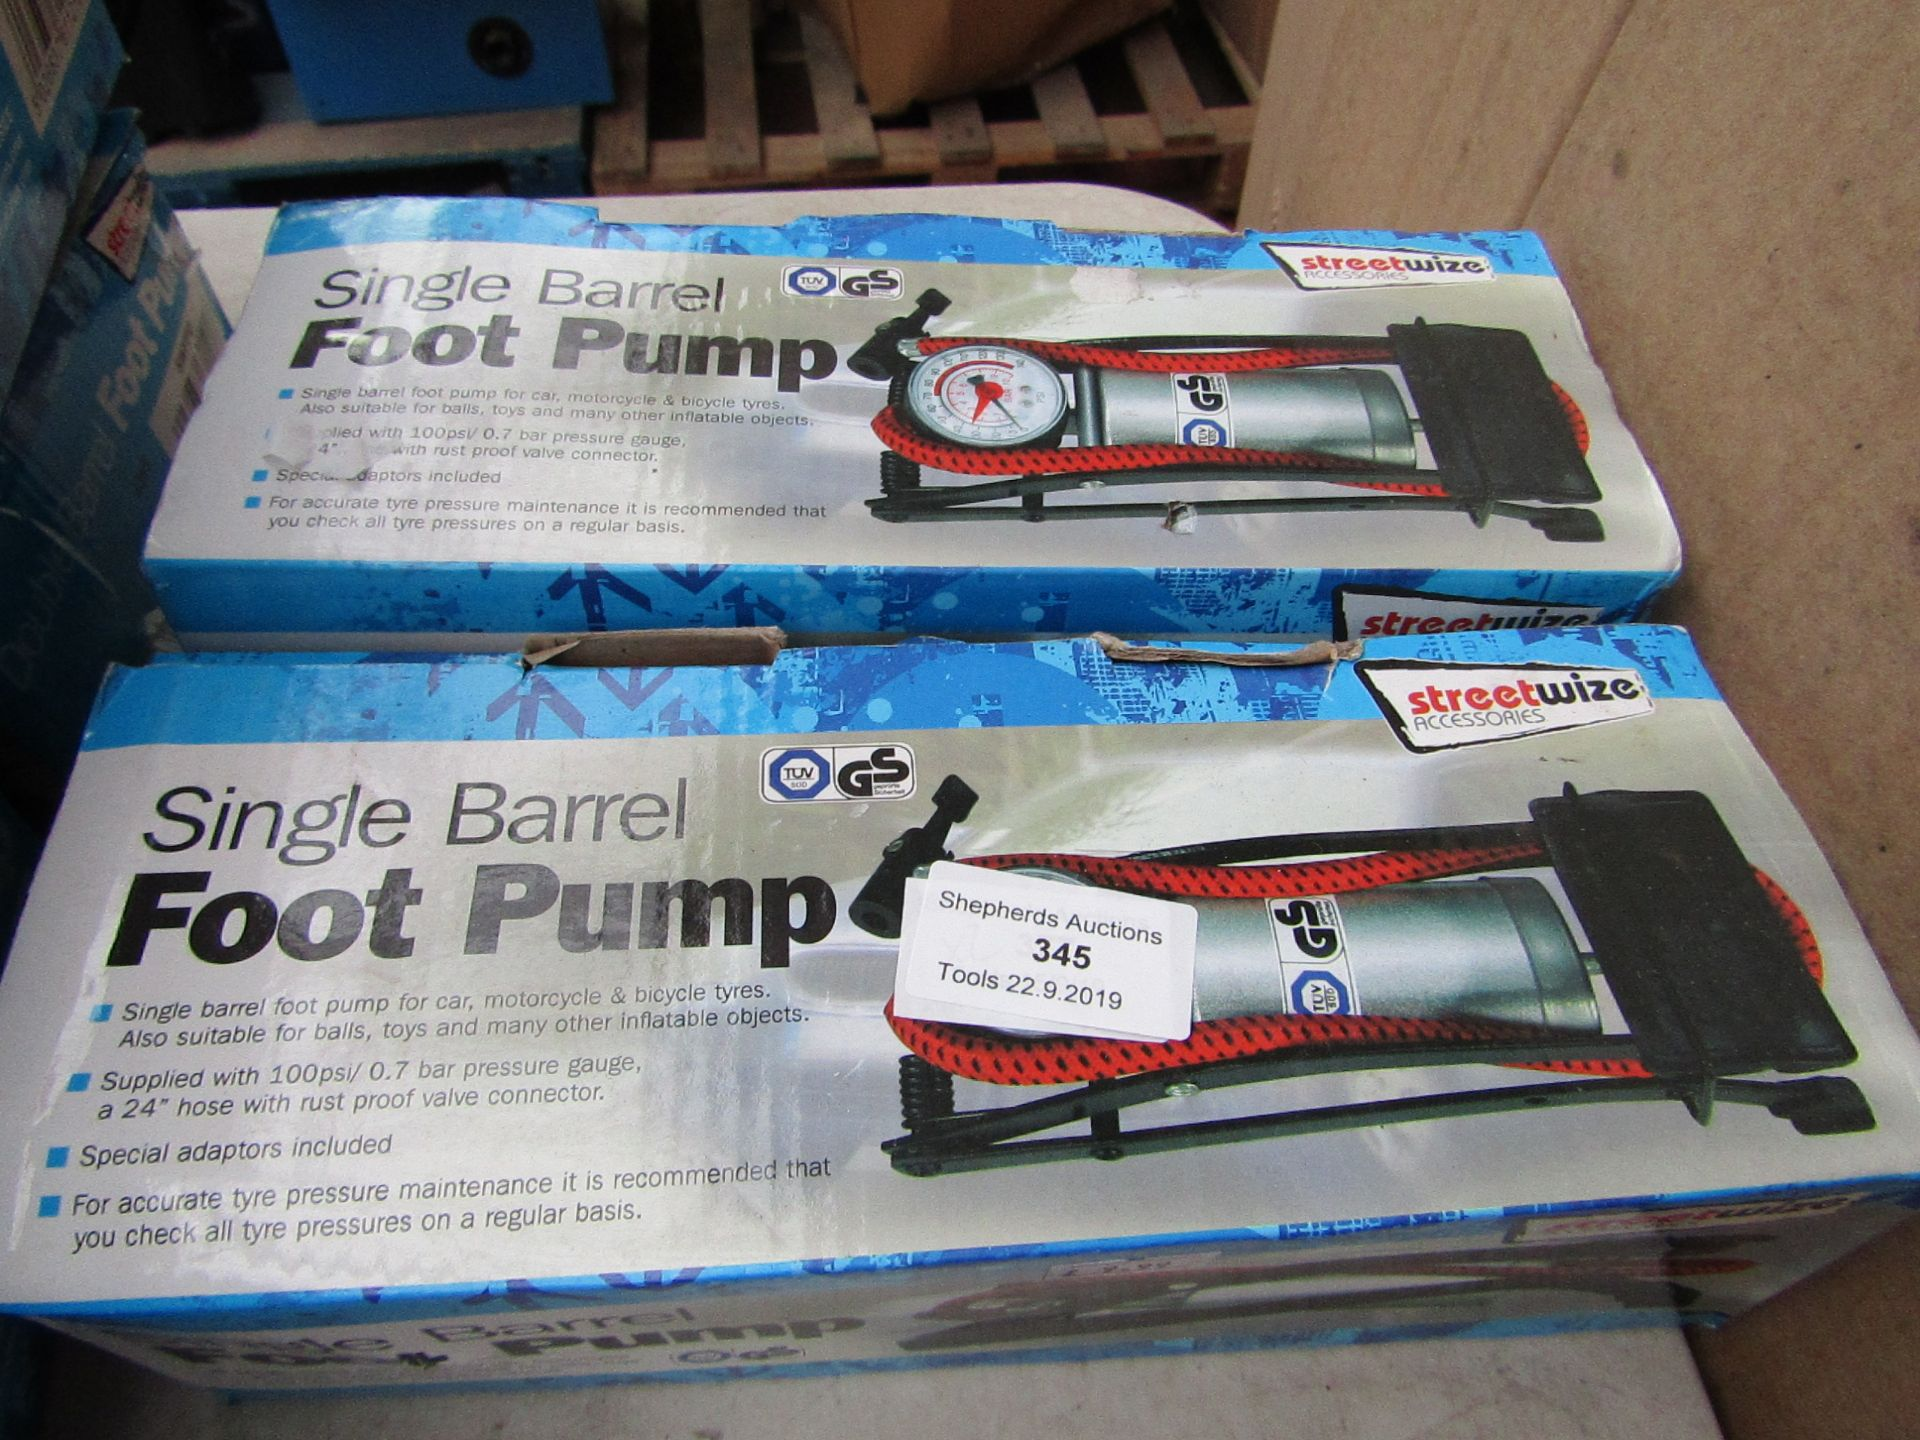 Lot 345 - 2x Streetwise single barrel foot pump, boxed and unchecked